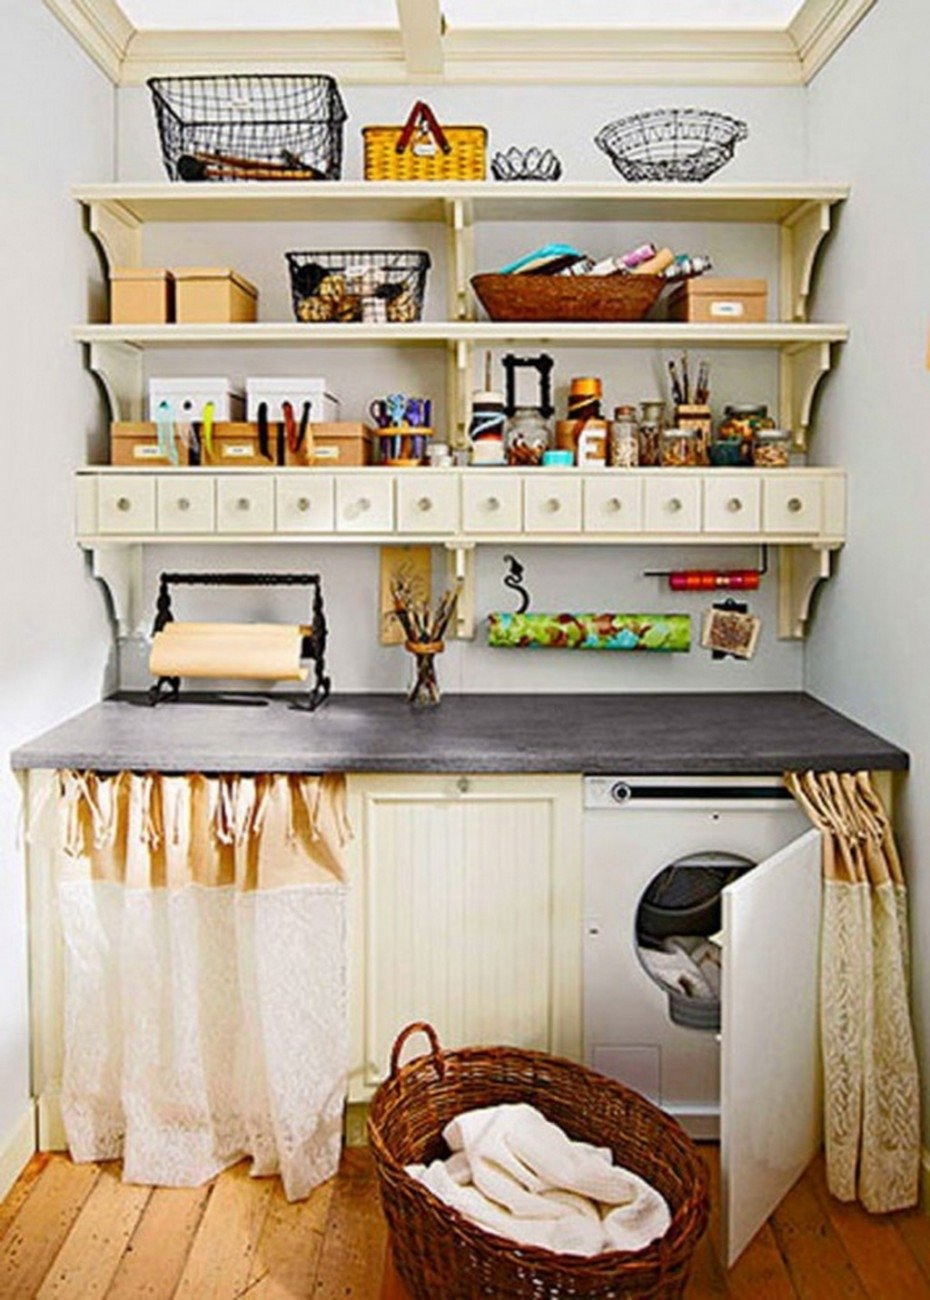 10 Cute Organization Ideas For Small Spaces innovative storage and organization ideas for small spaces room 2021